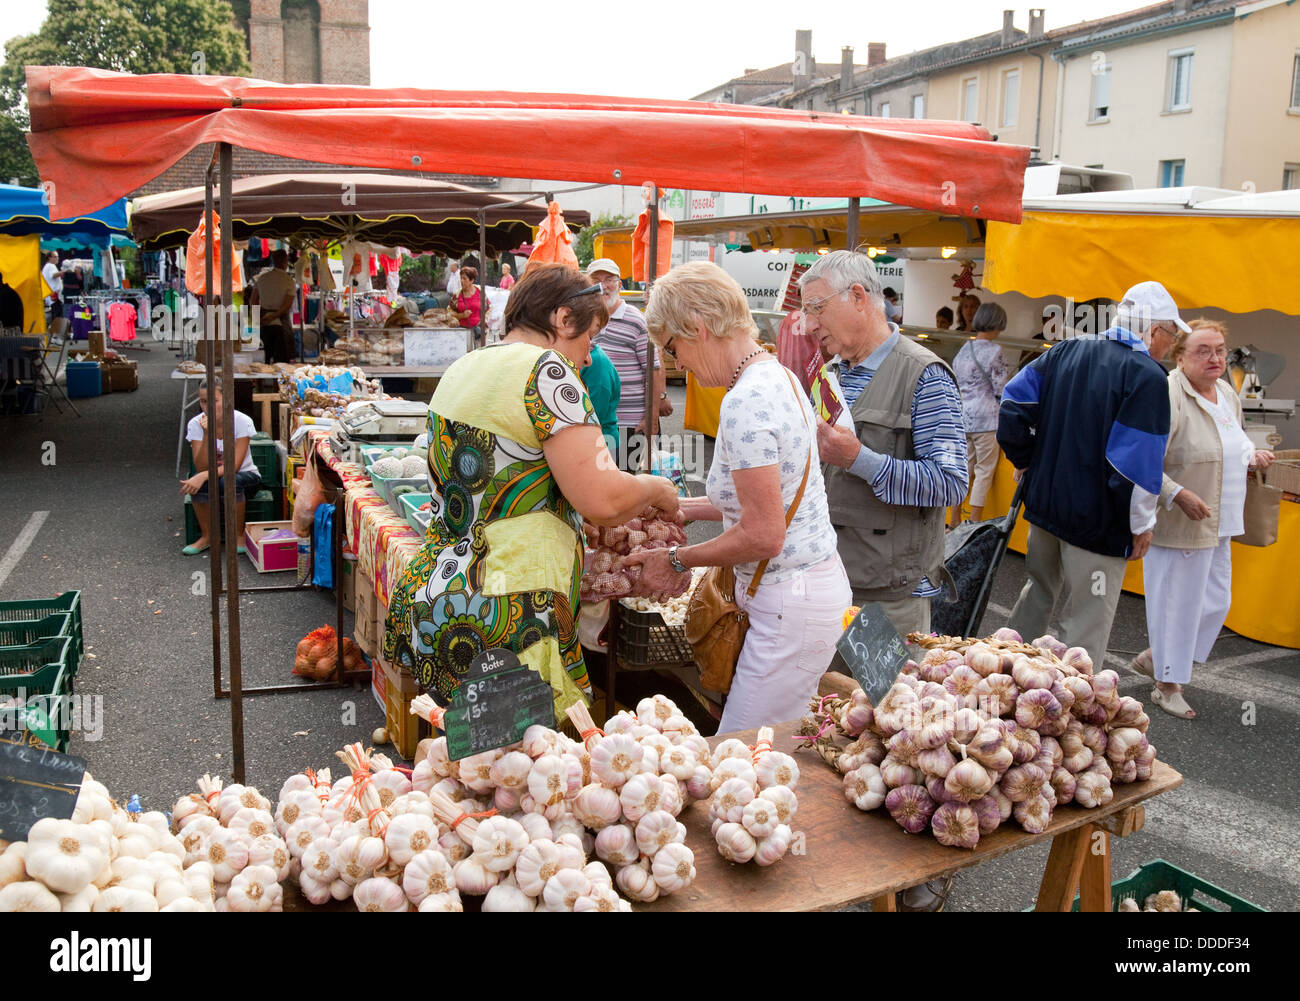 People Buying Garlic In A Traditional French Town Market St